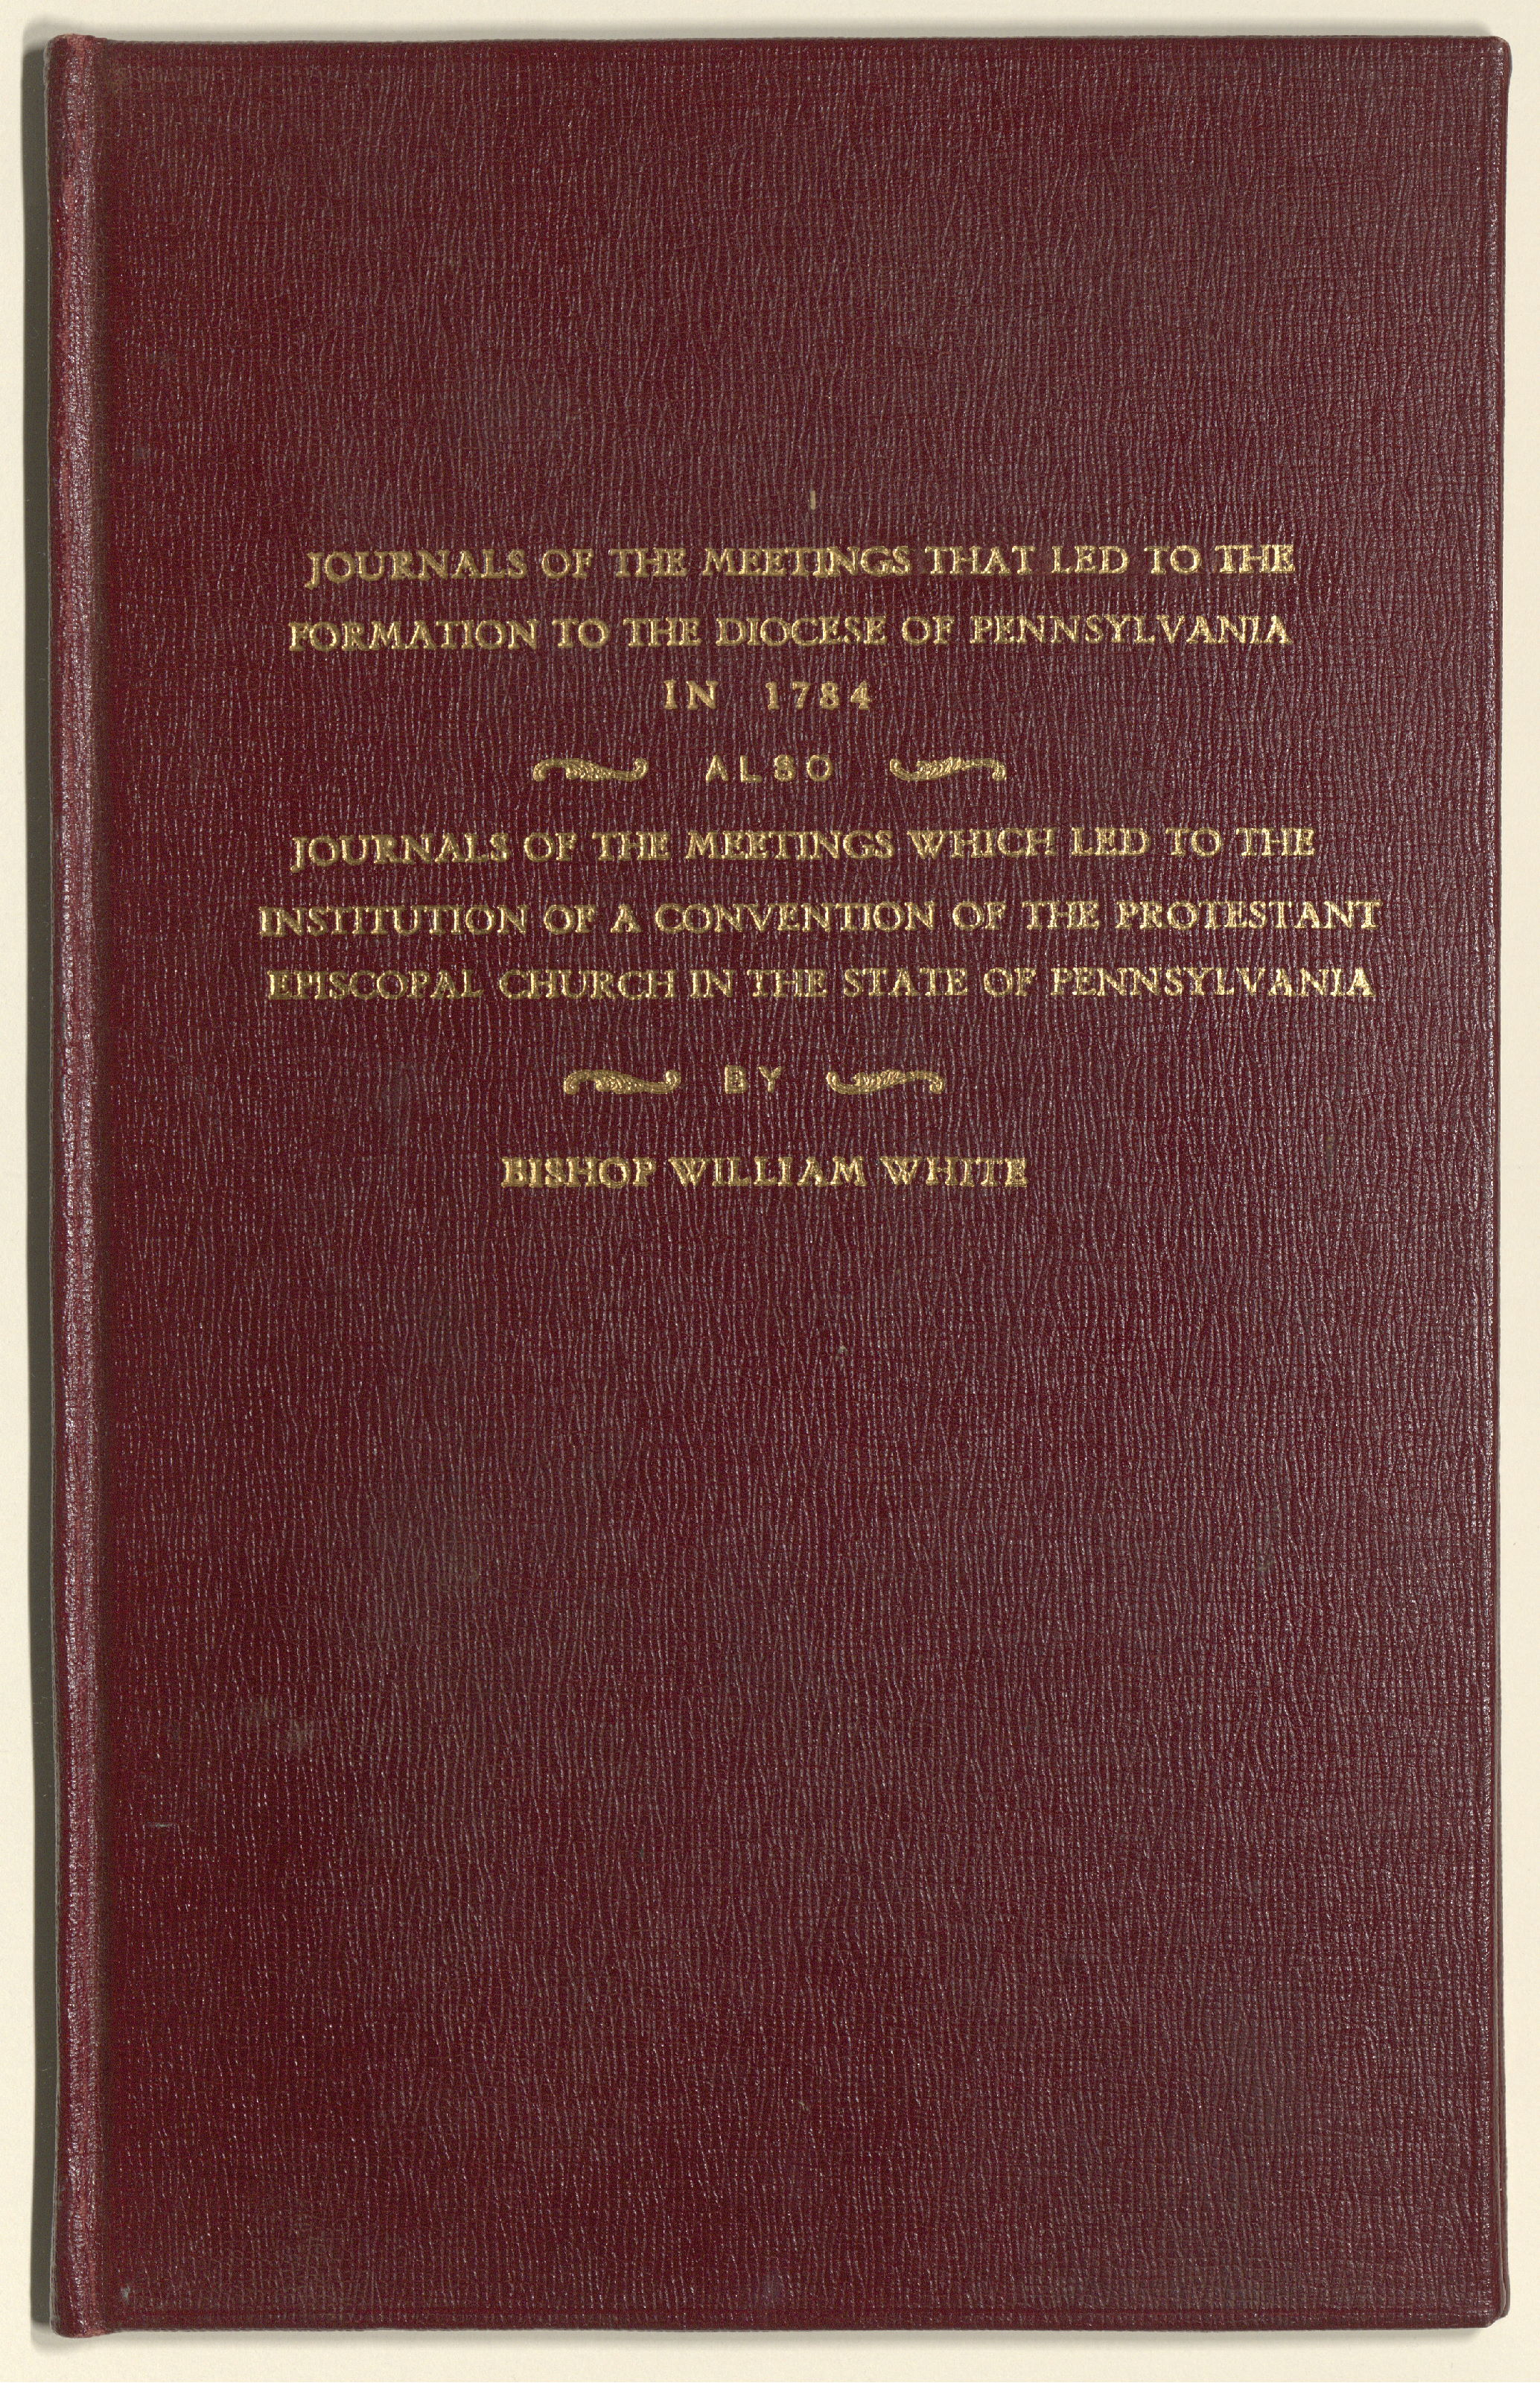 https://www.philageohistory.org/rdic-images/common/get-jpeg-book.cfm/EpiscopalDiocese.WilliamWhiteJournal.001.FrontCover.jpg